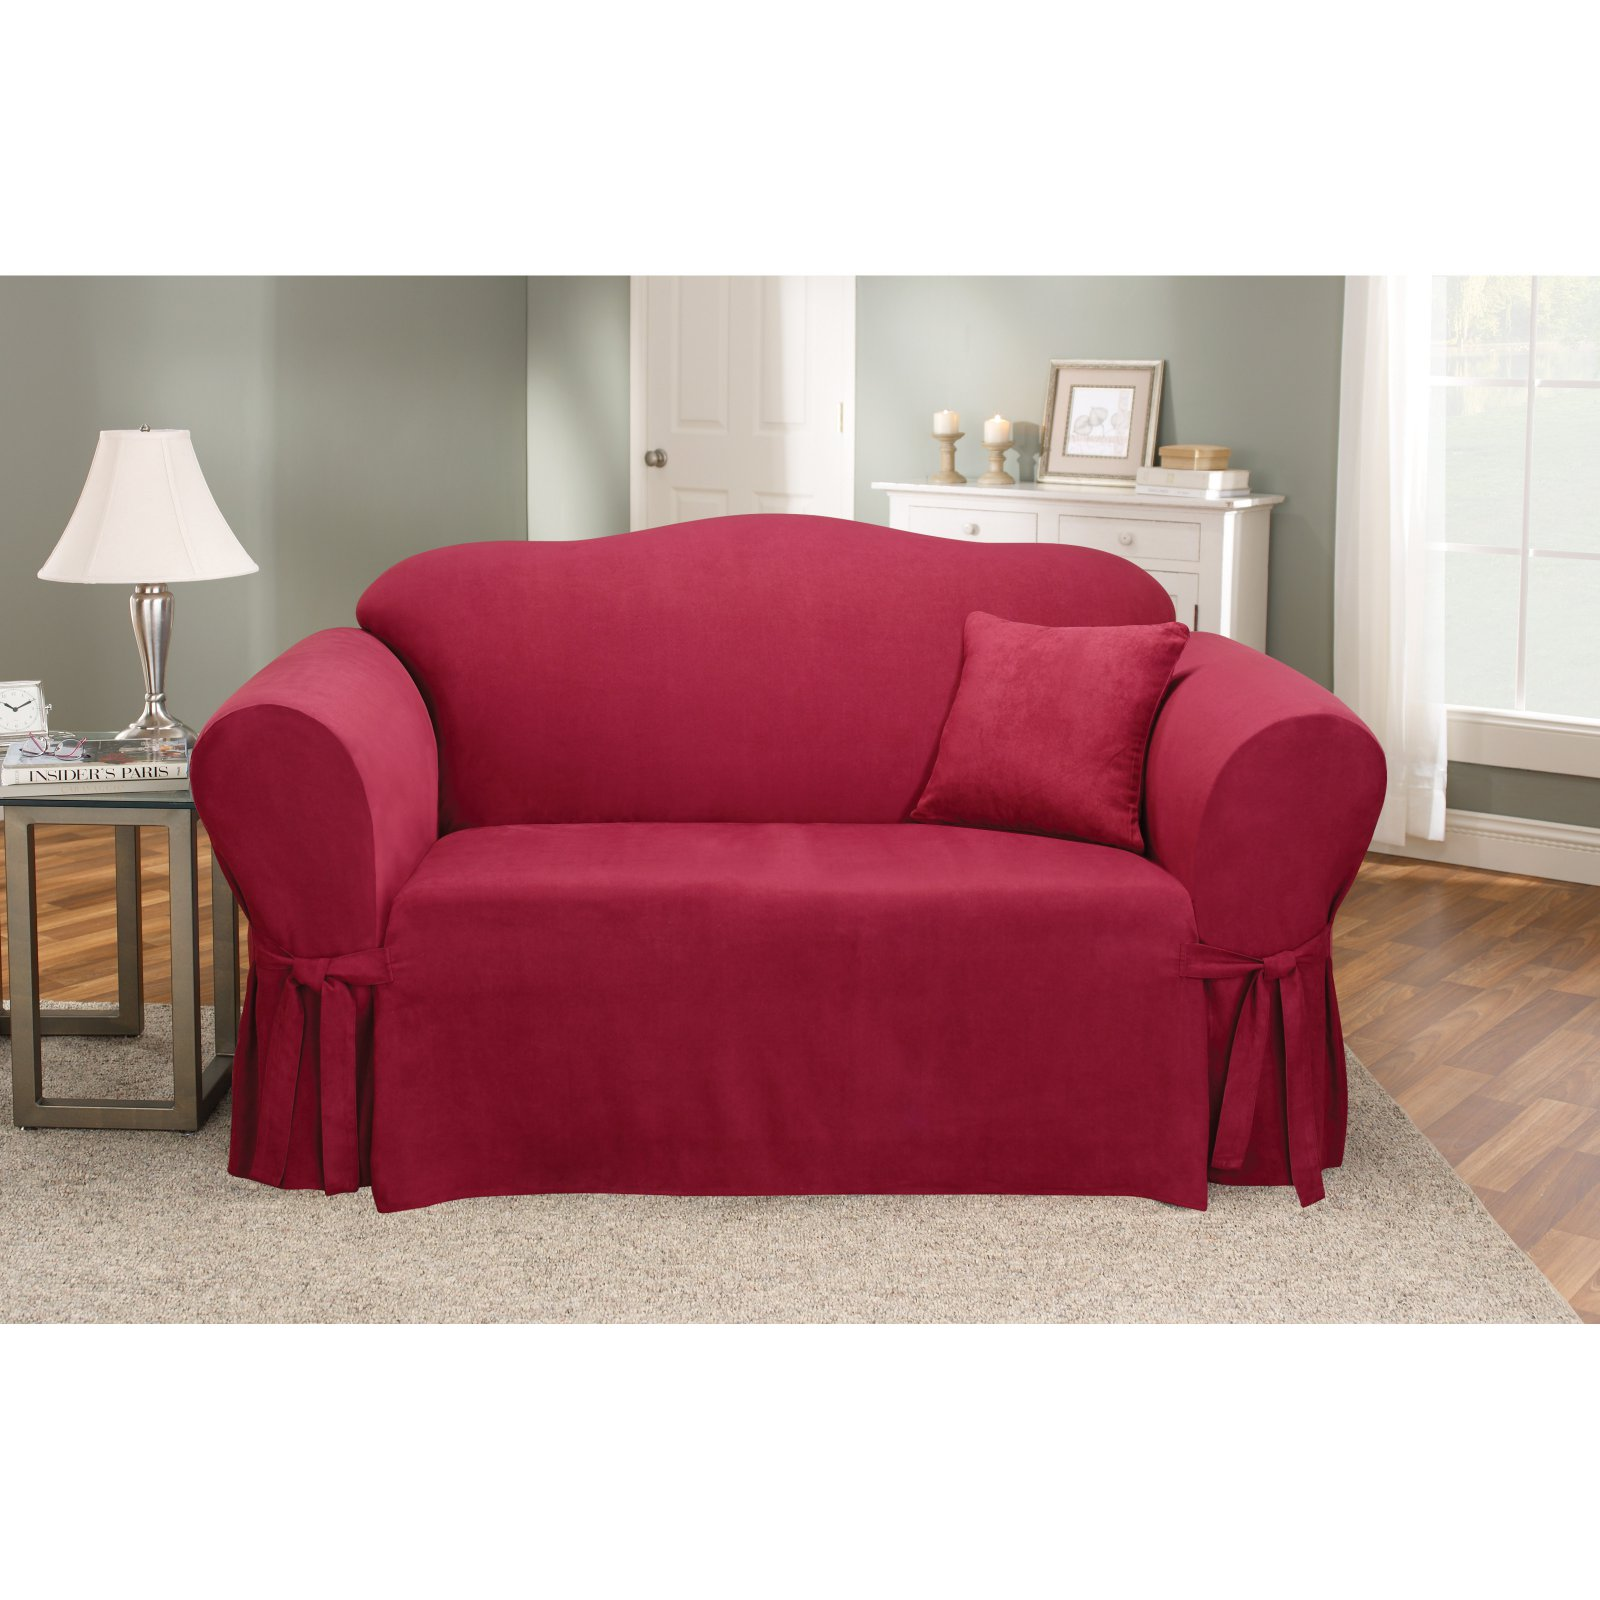 Ordinaire Sure Fit Soft Suede Sofa Slipcover